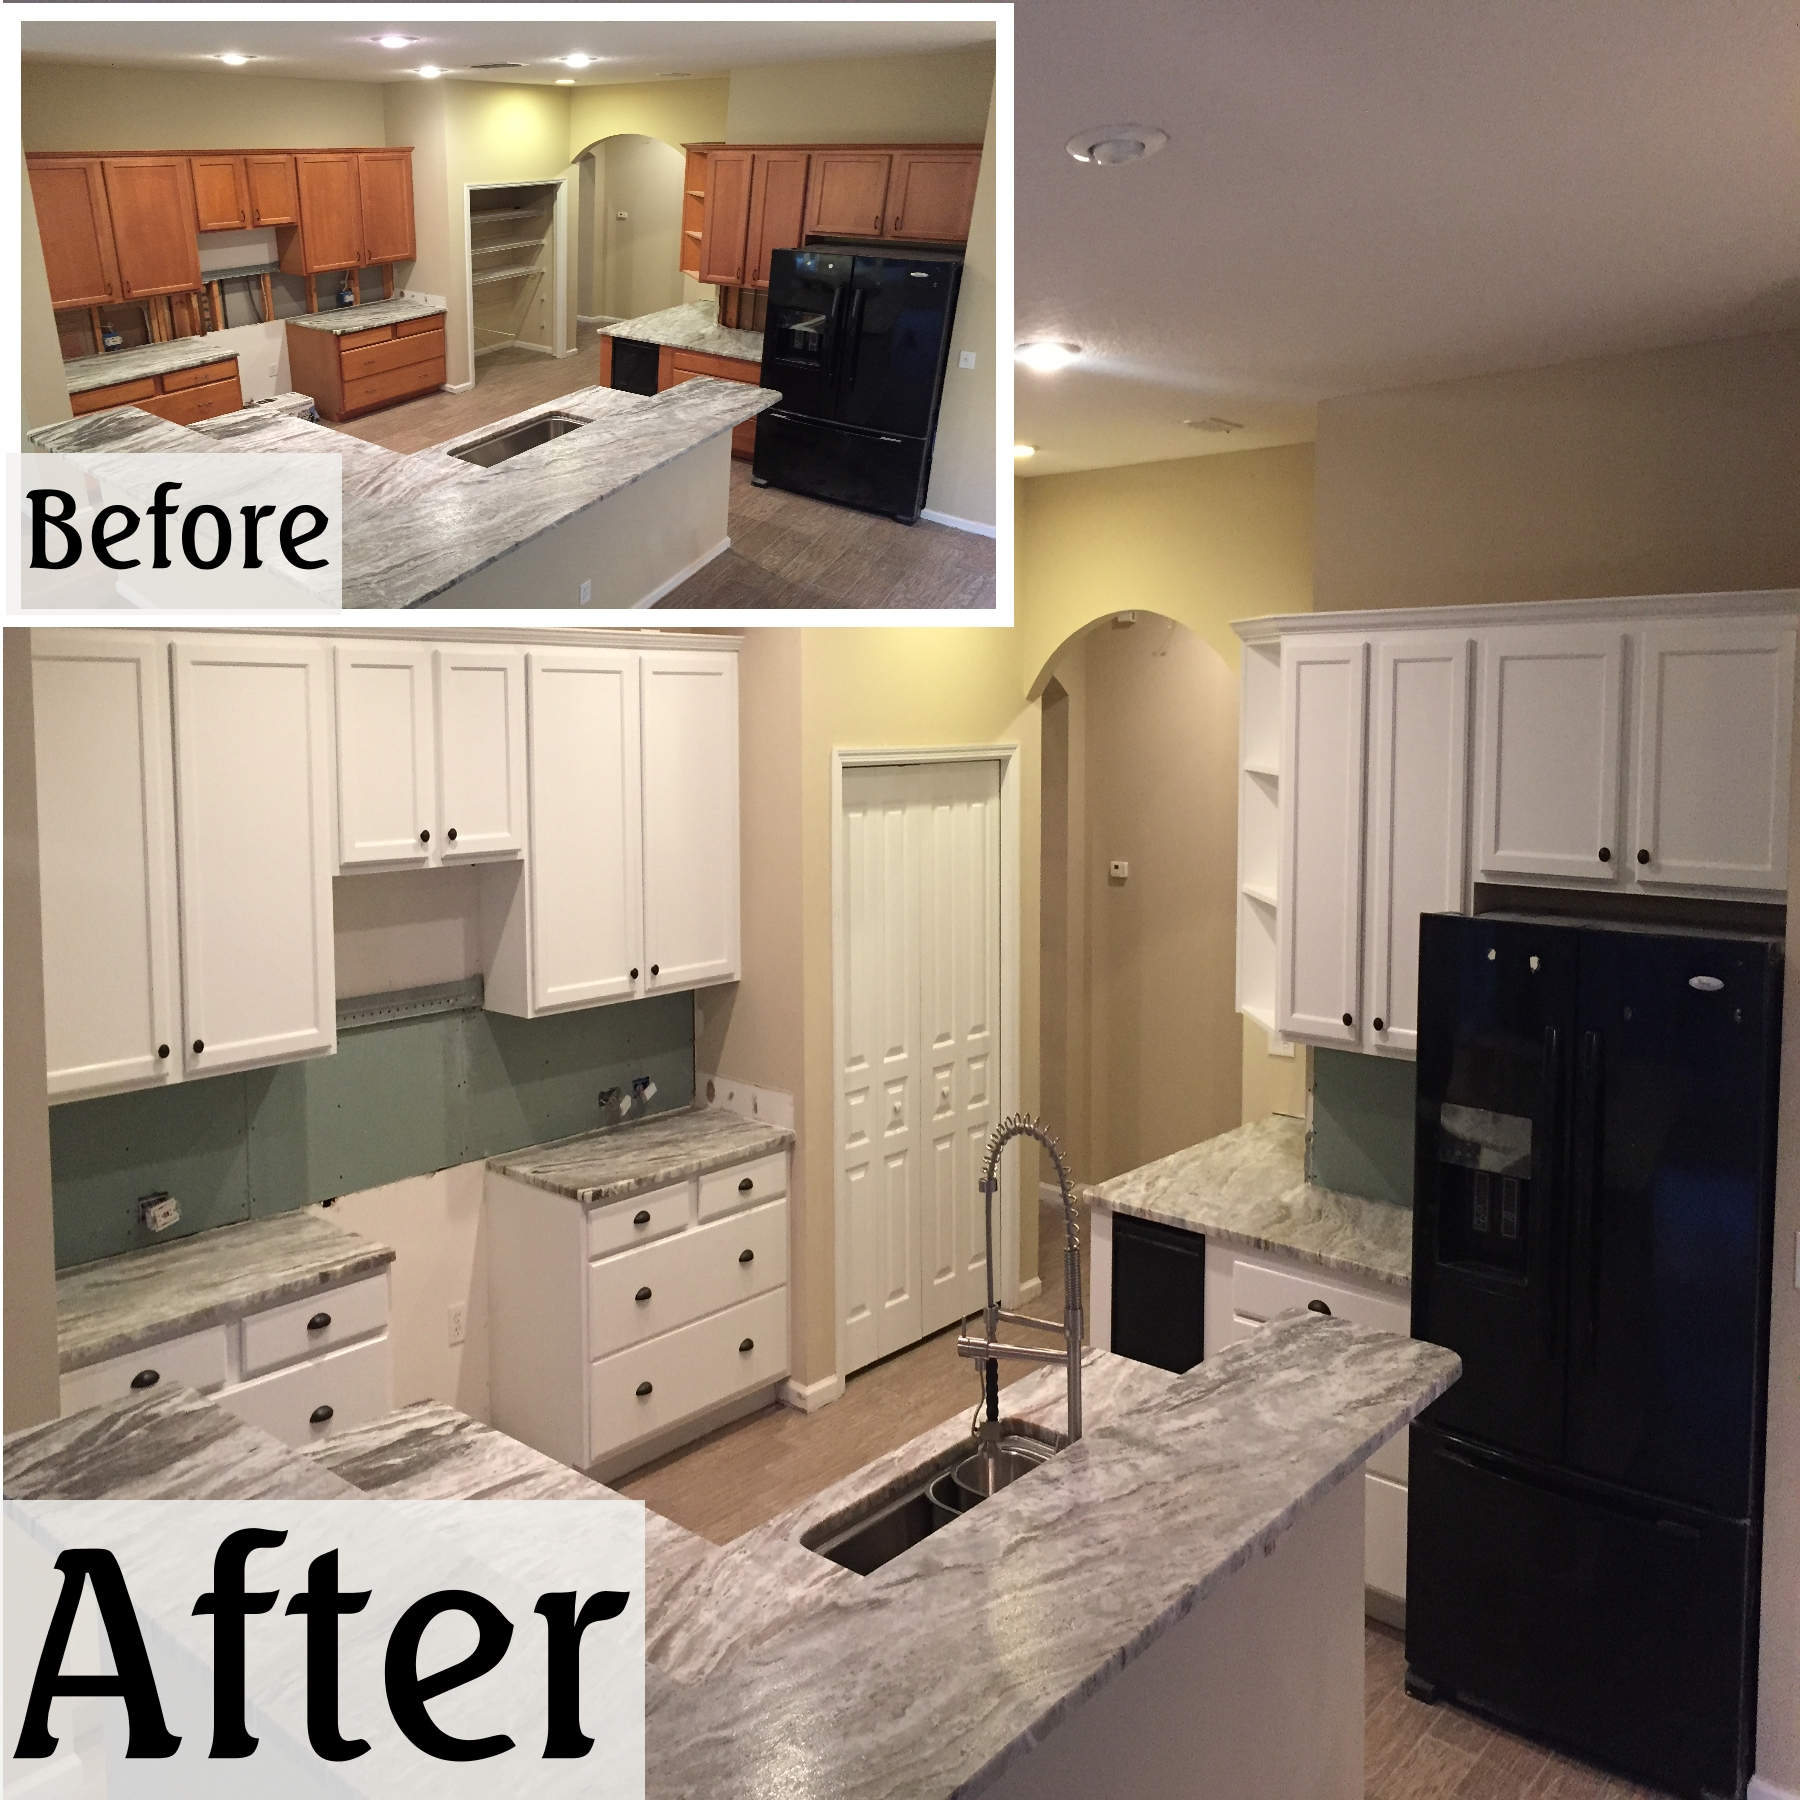 The professional 39 s guides and tips to cabinet painting for Kitchen cabinets jacksonville fl